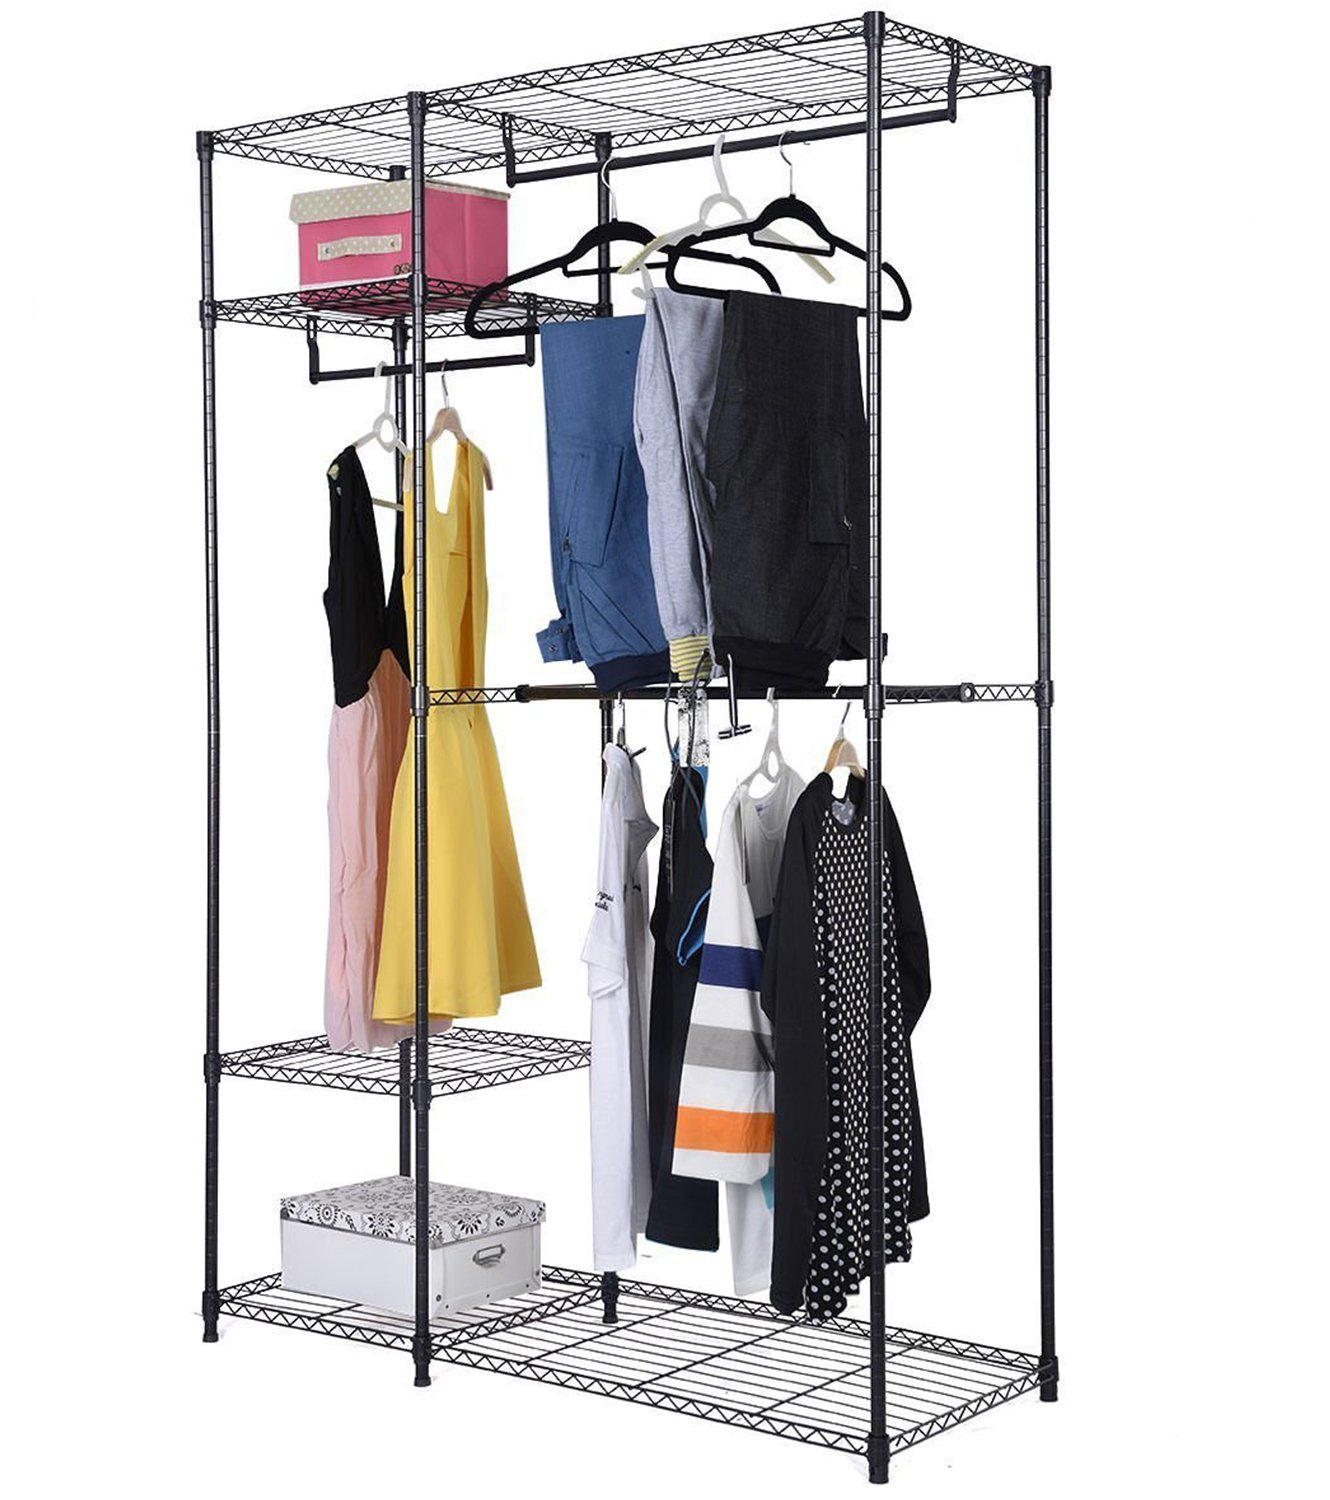 style images suits clothes shirts wear textile rack stylish room shop retail hanging store rail hanger furniture boutique lifestyle fashion clothing garment wardrobe en free photo